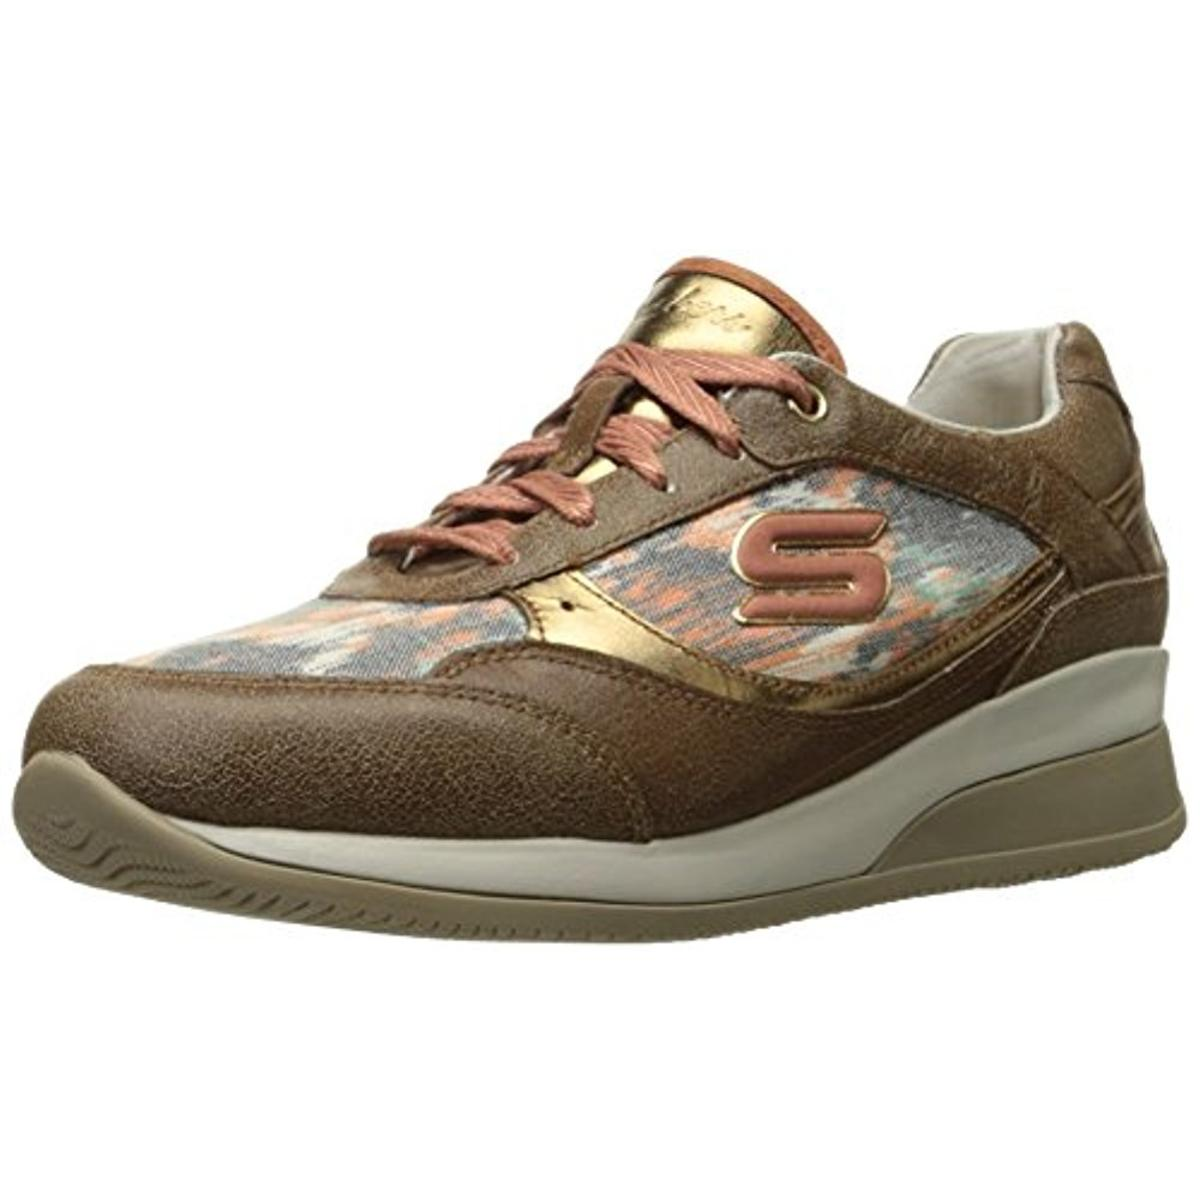 Skechers Womens Leather Wedge Fit Fashion Sneakers